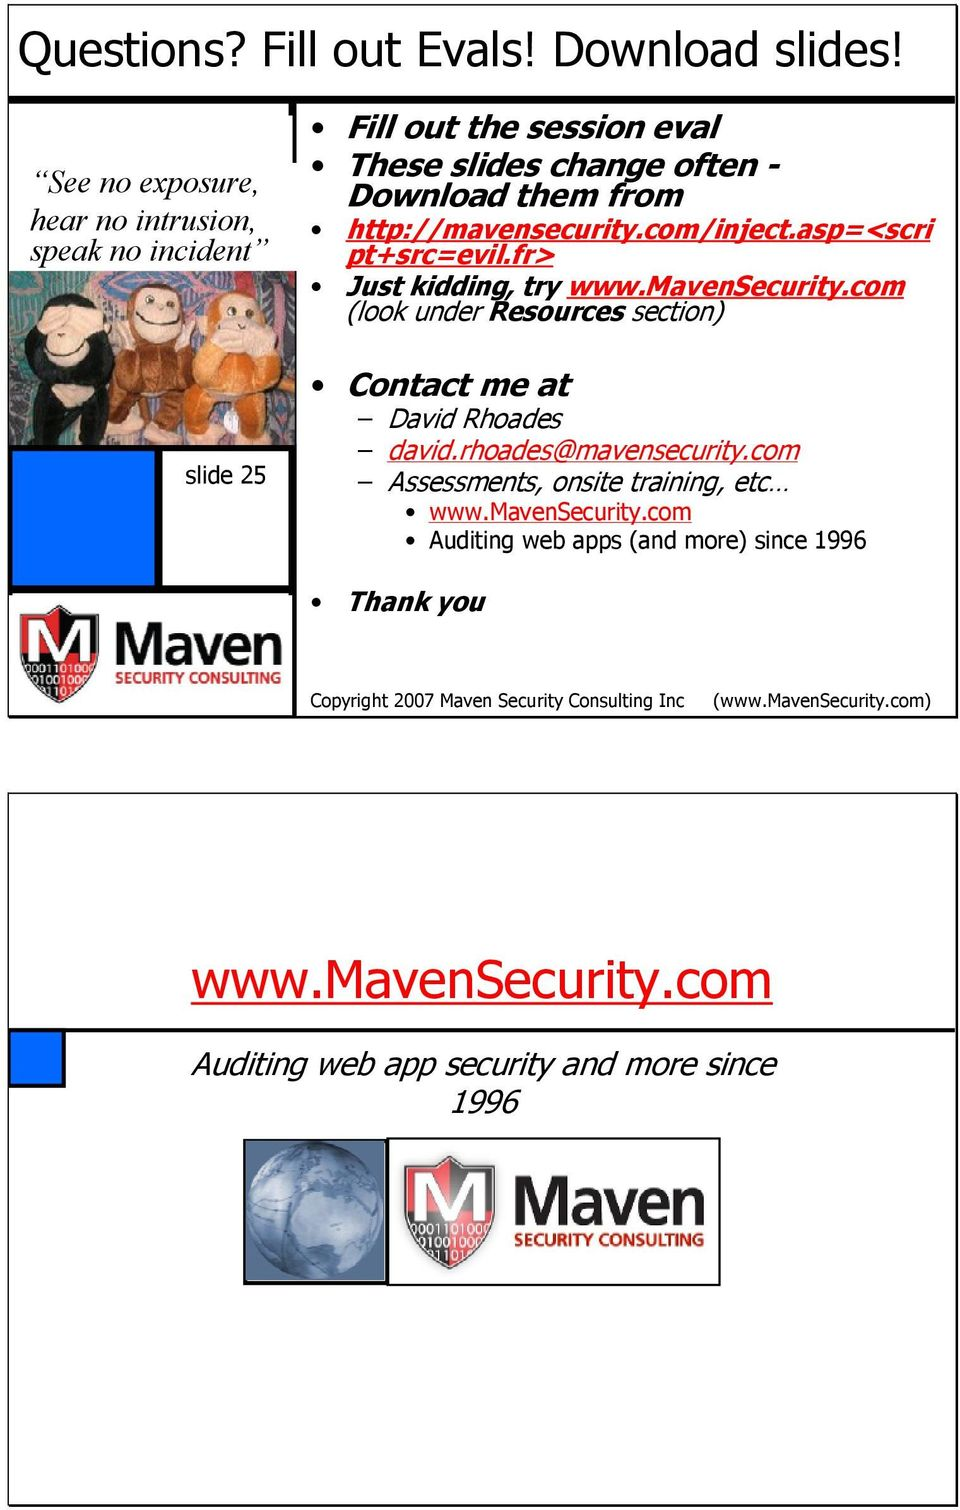 http://mavensecurity.com/inject.asp=<scri pt+src=evil.fr> Just kidding, try www.mavensecurity.com (look under Resources section) Contact me at David Rhoades david.